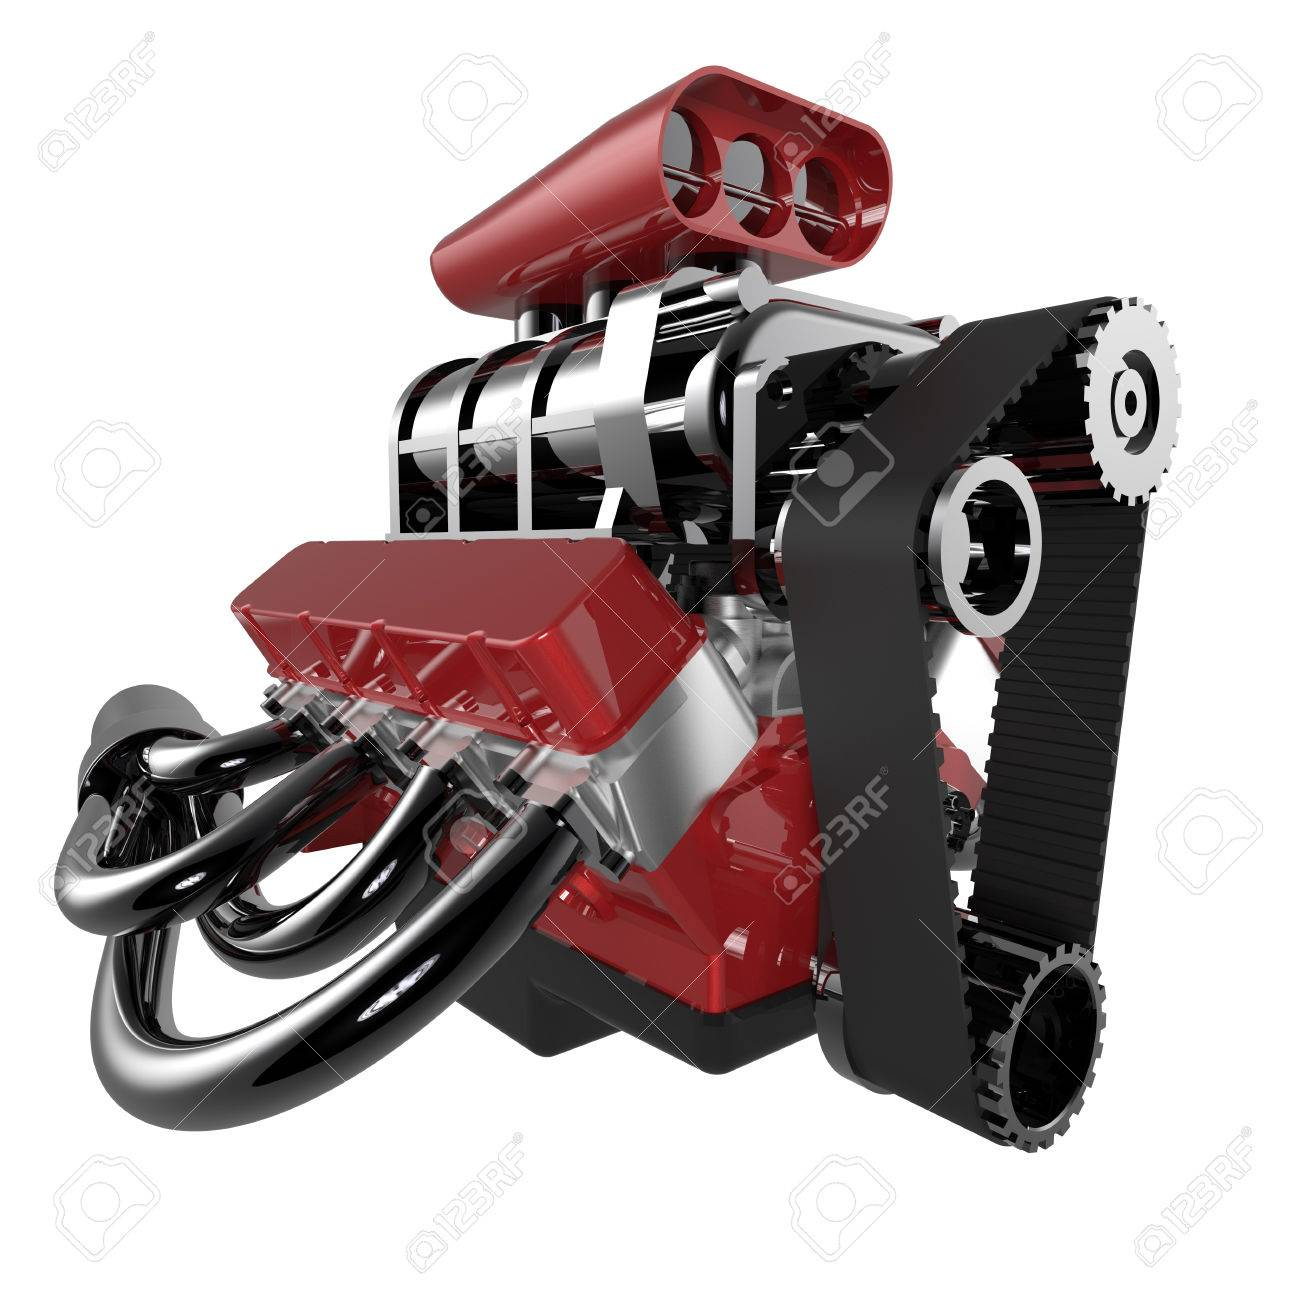 Hot Rod V8 Engine Isolated On White. 3D Render Stock Photo, Picture ...